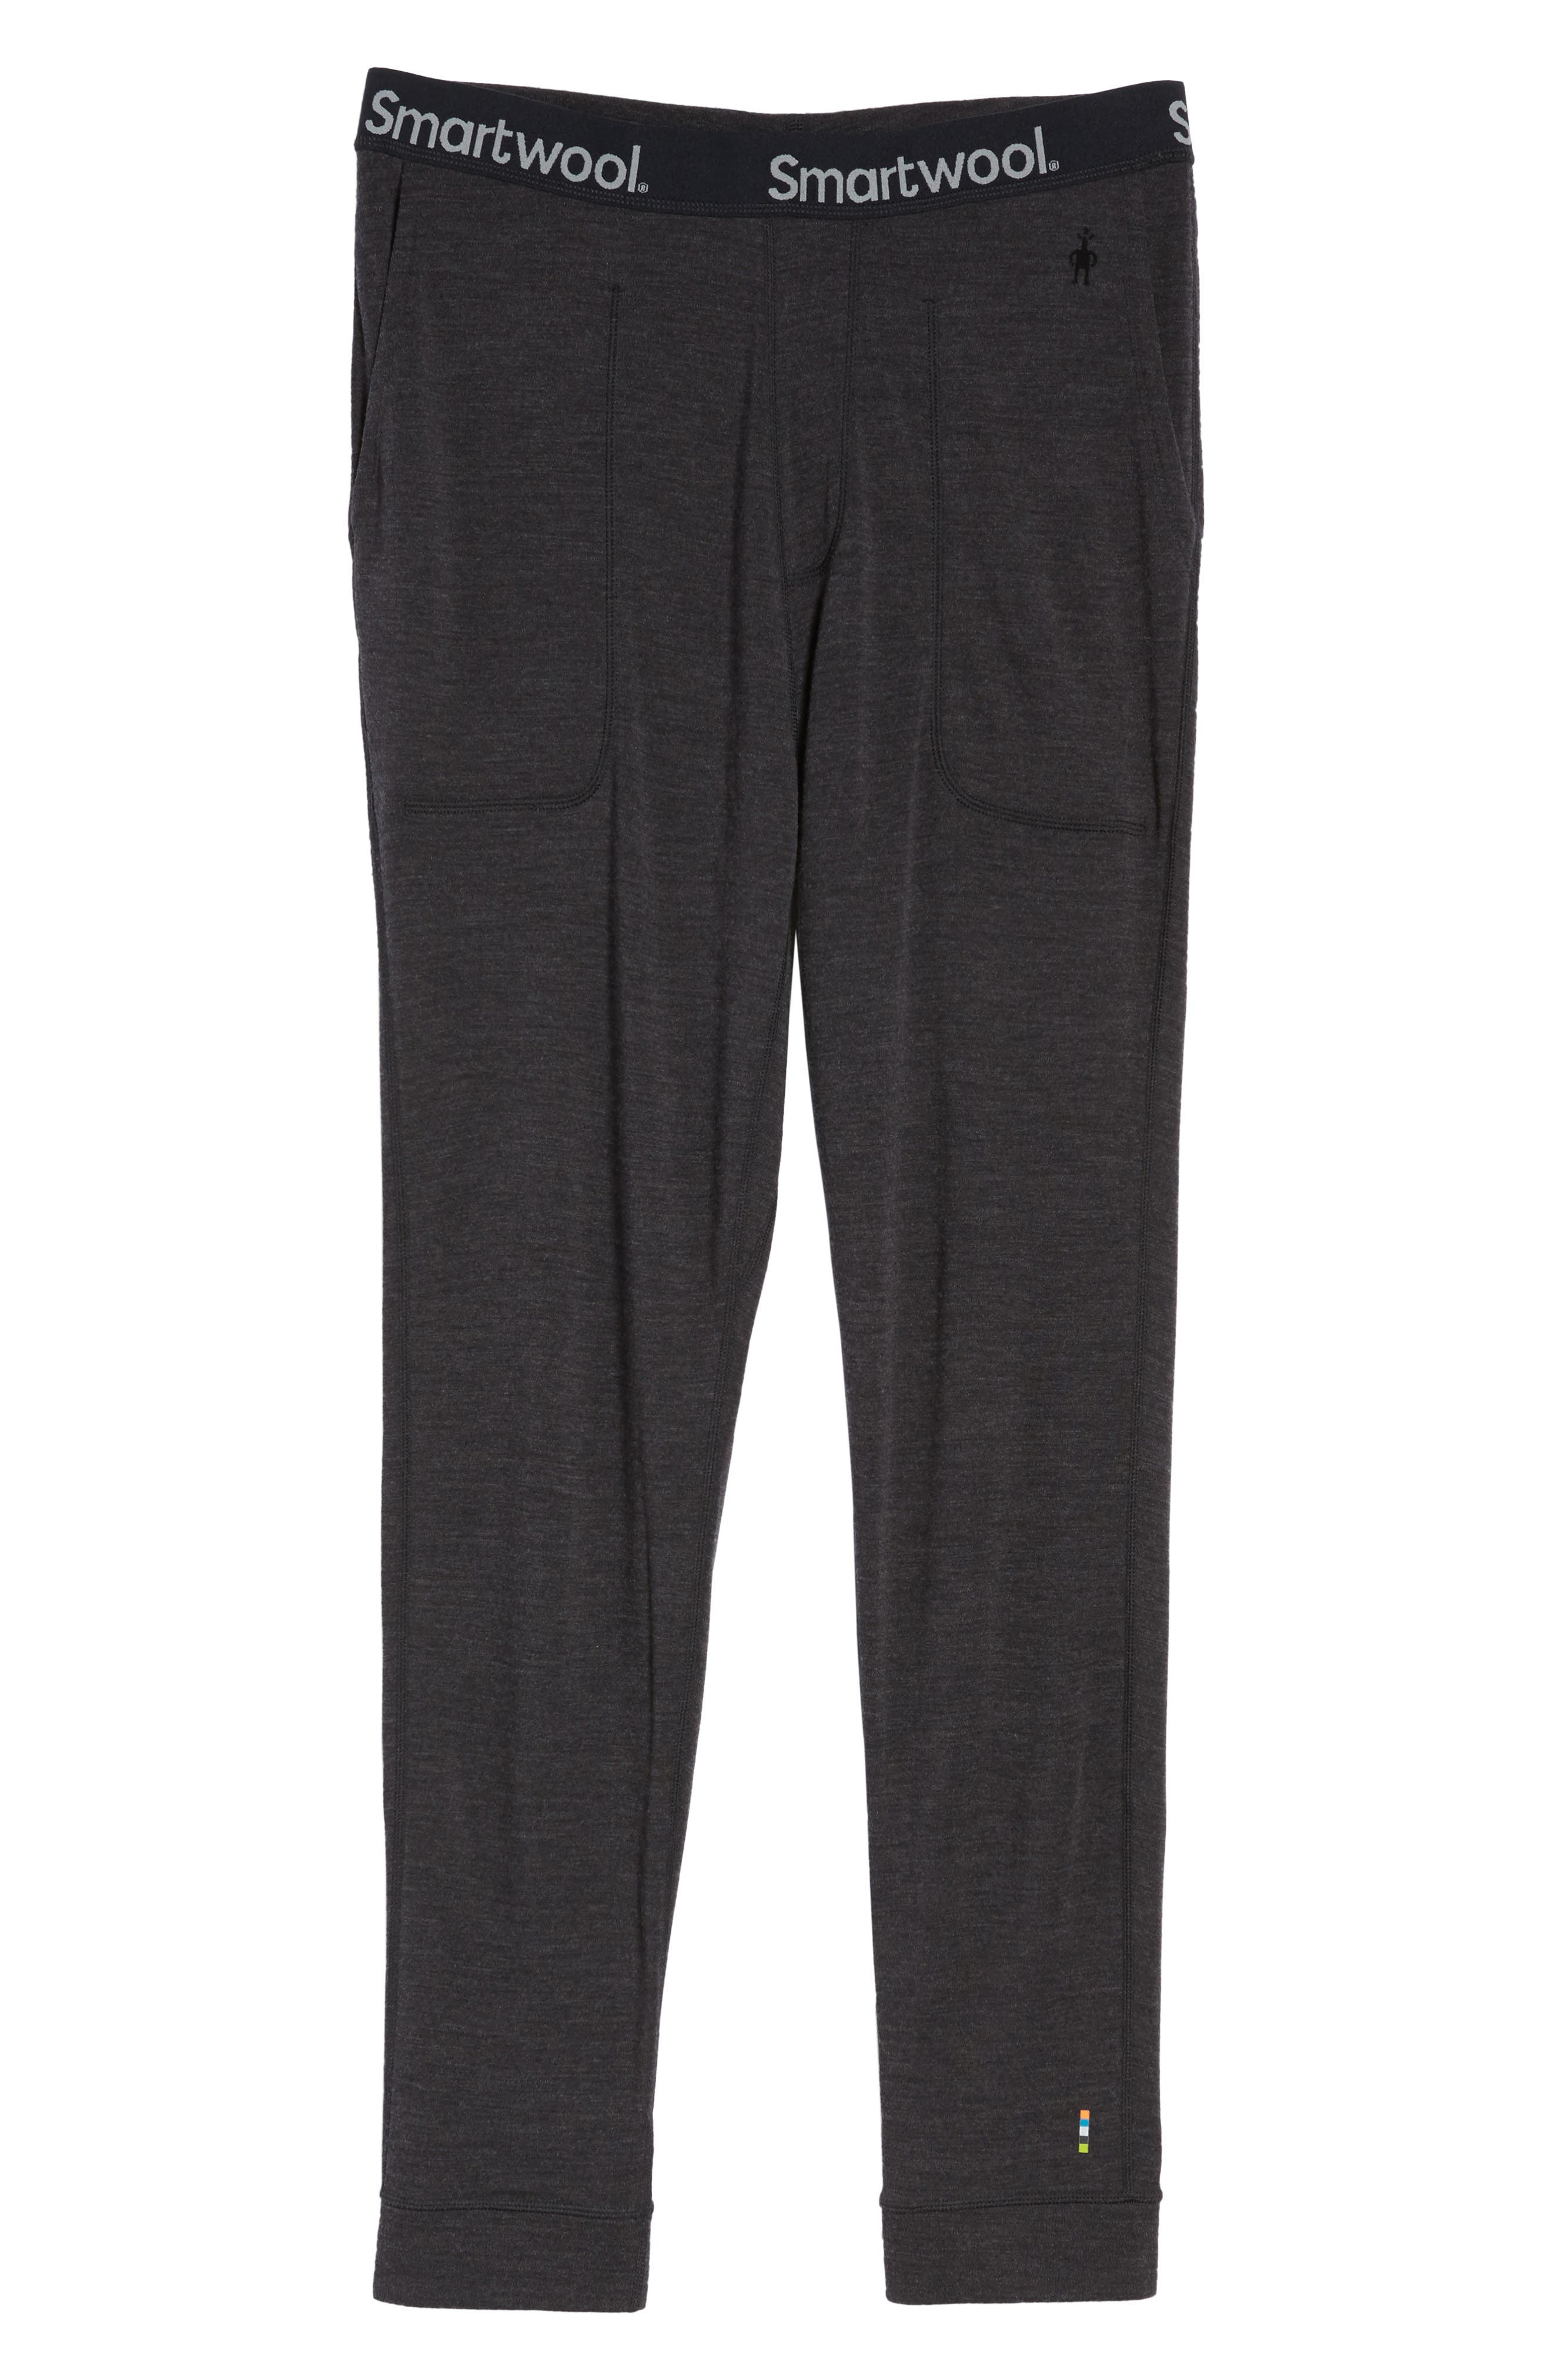 250 Merino Wool Jogger Pants,                             Alternate thumbnail 6, color,                             Charcoal